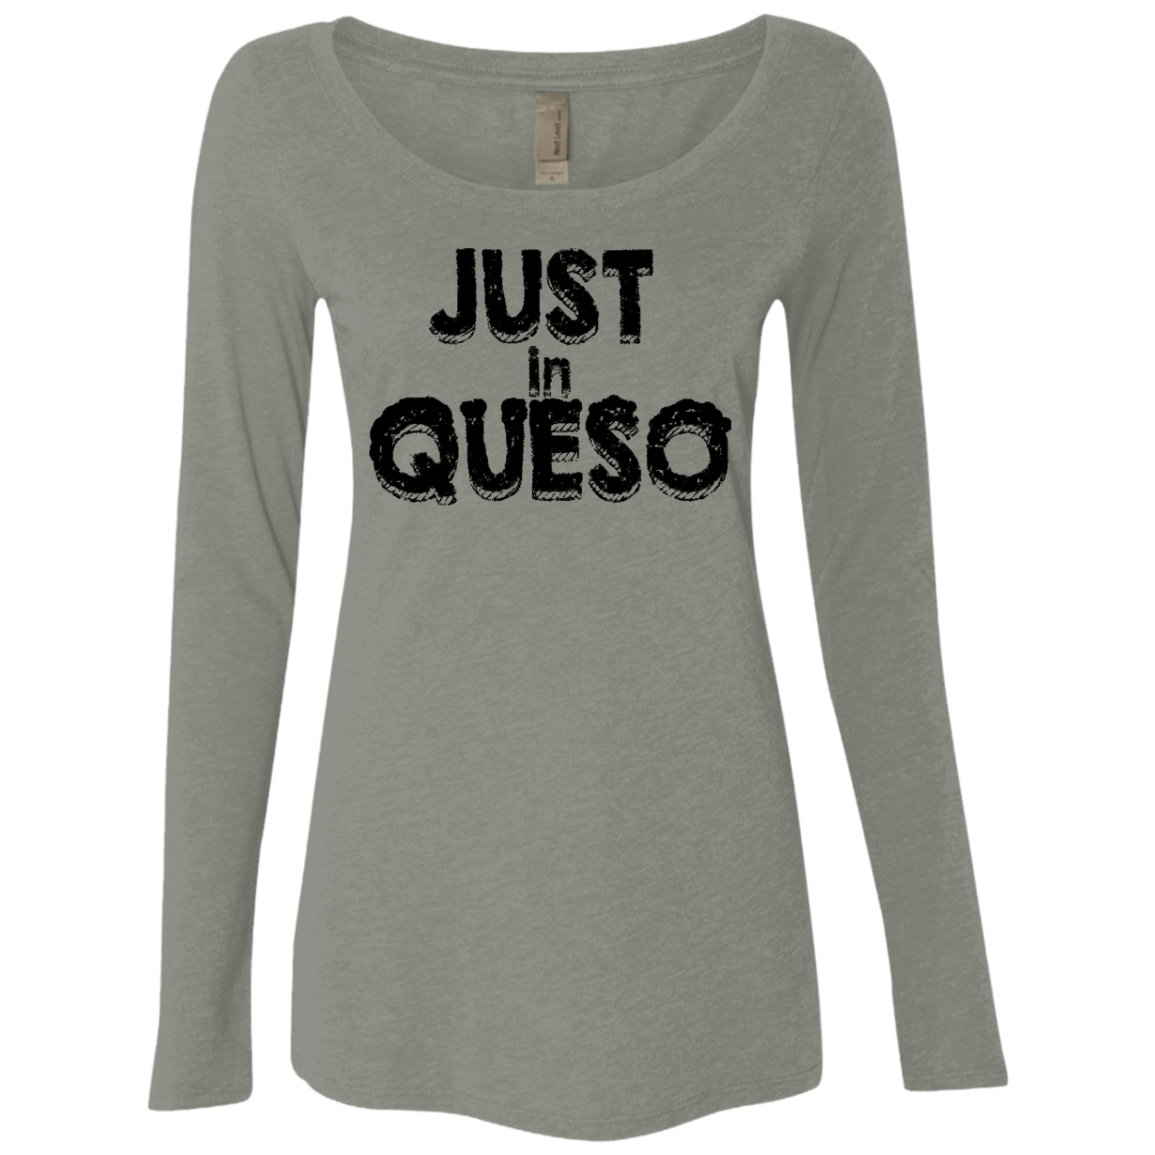 Just In Queso Women's Long Sleeve Tee